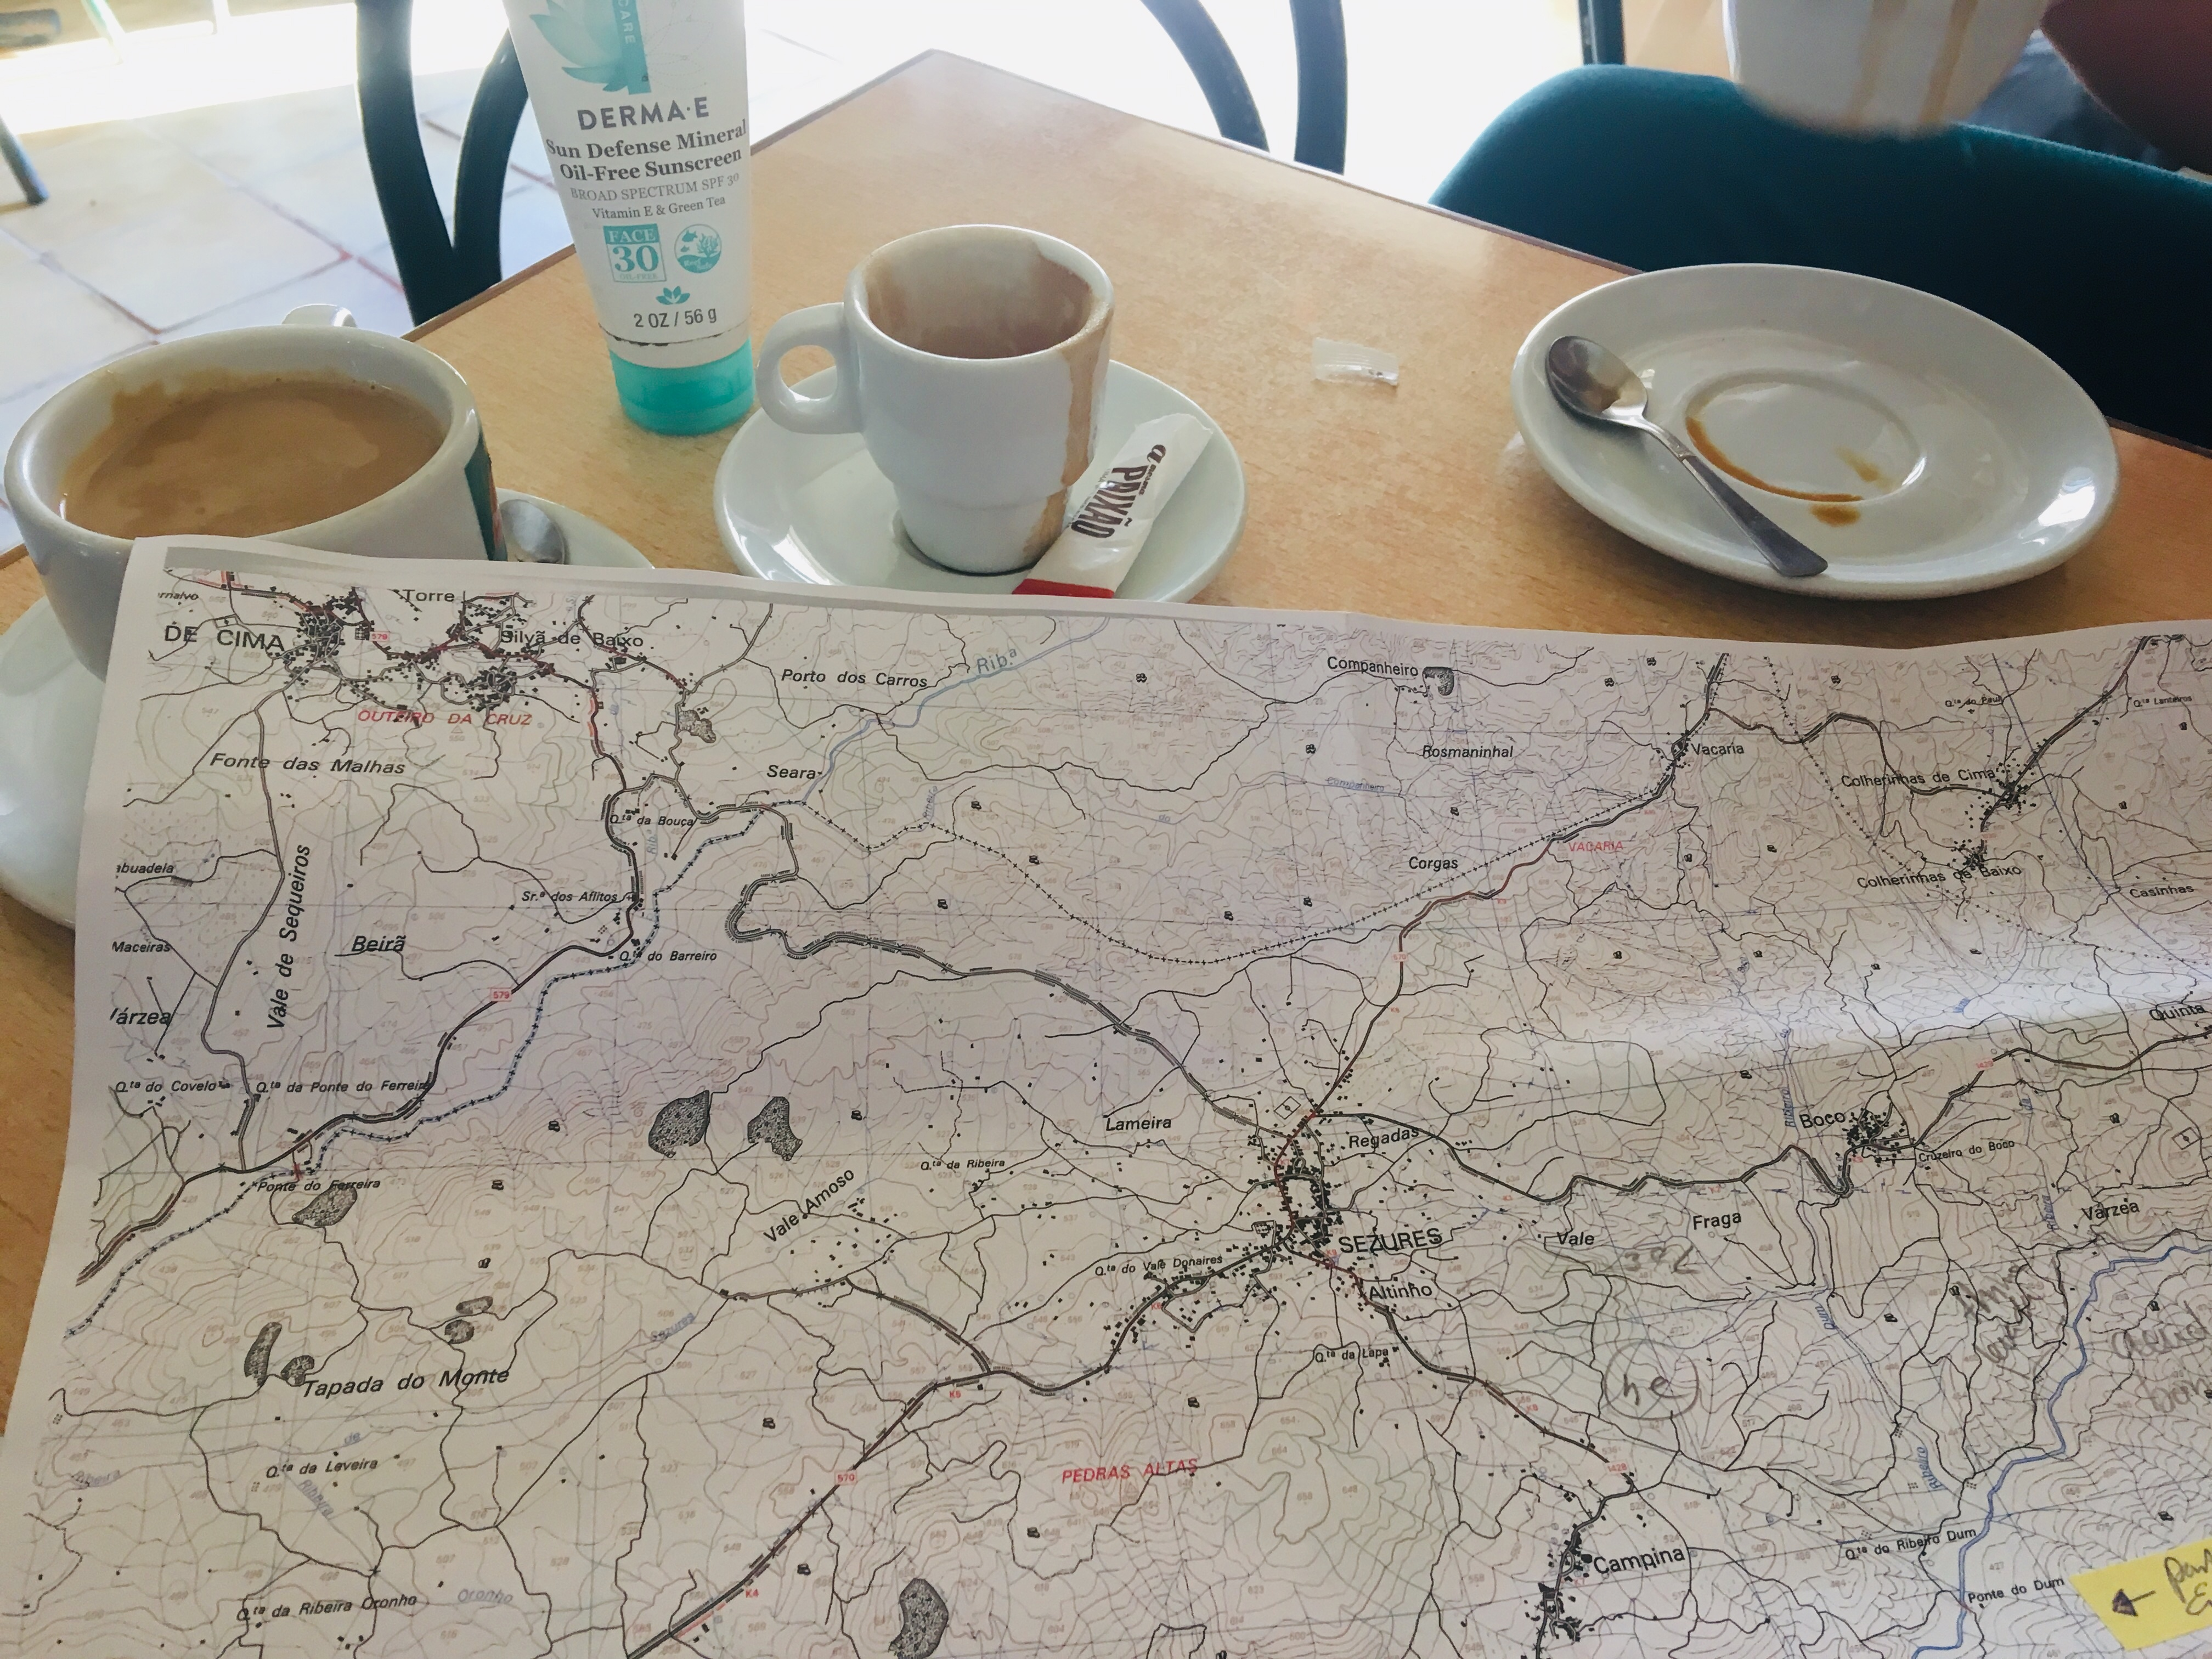 Coffee and maps for breakfast